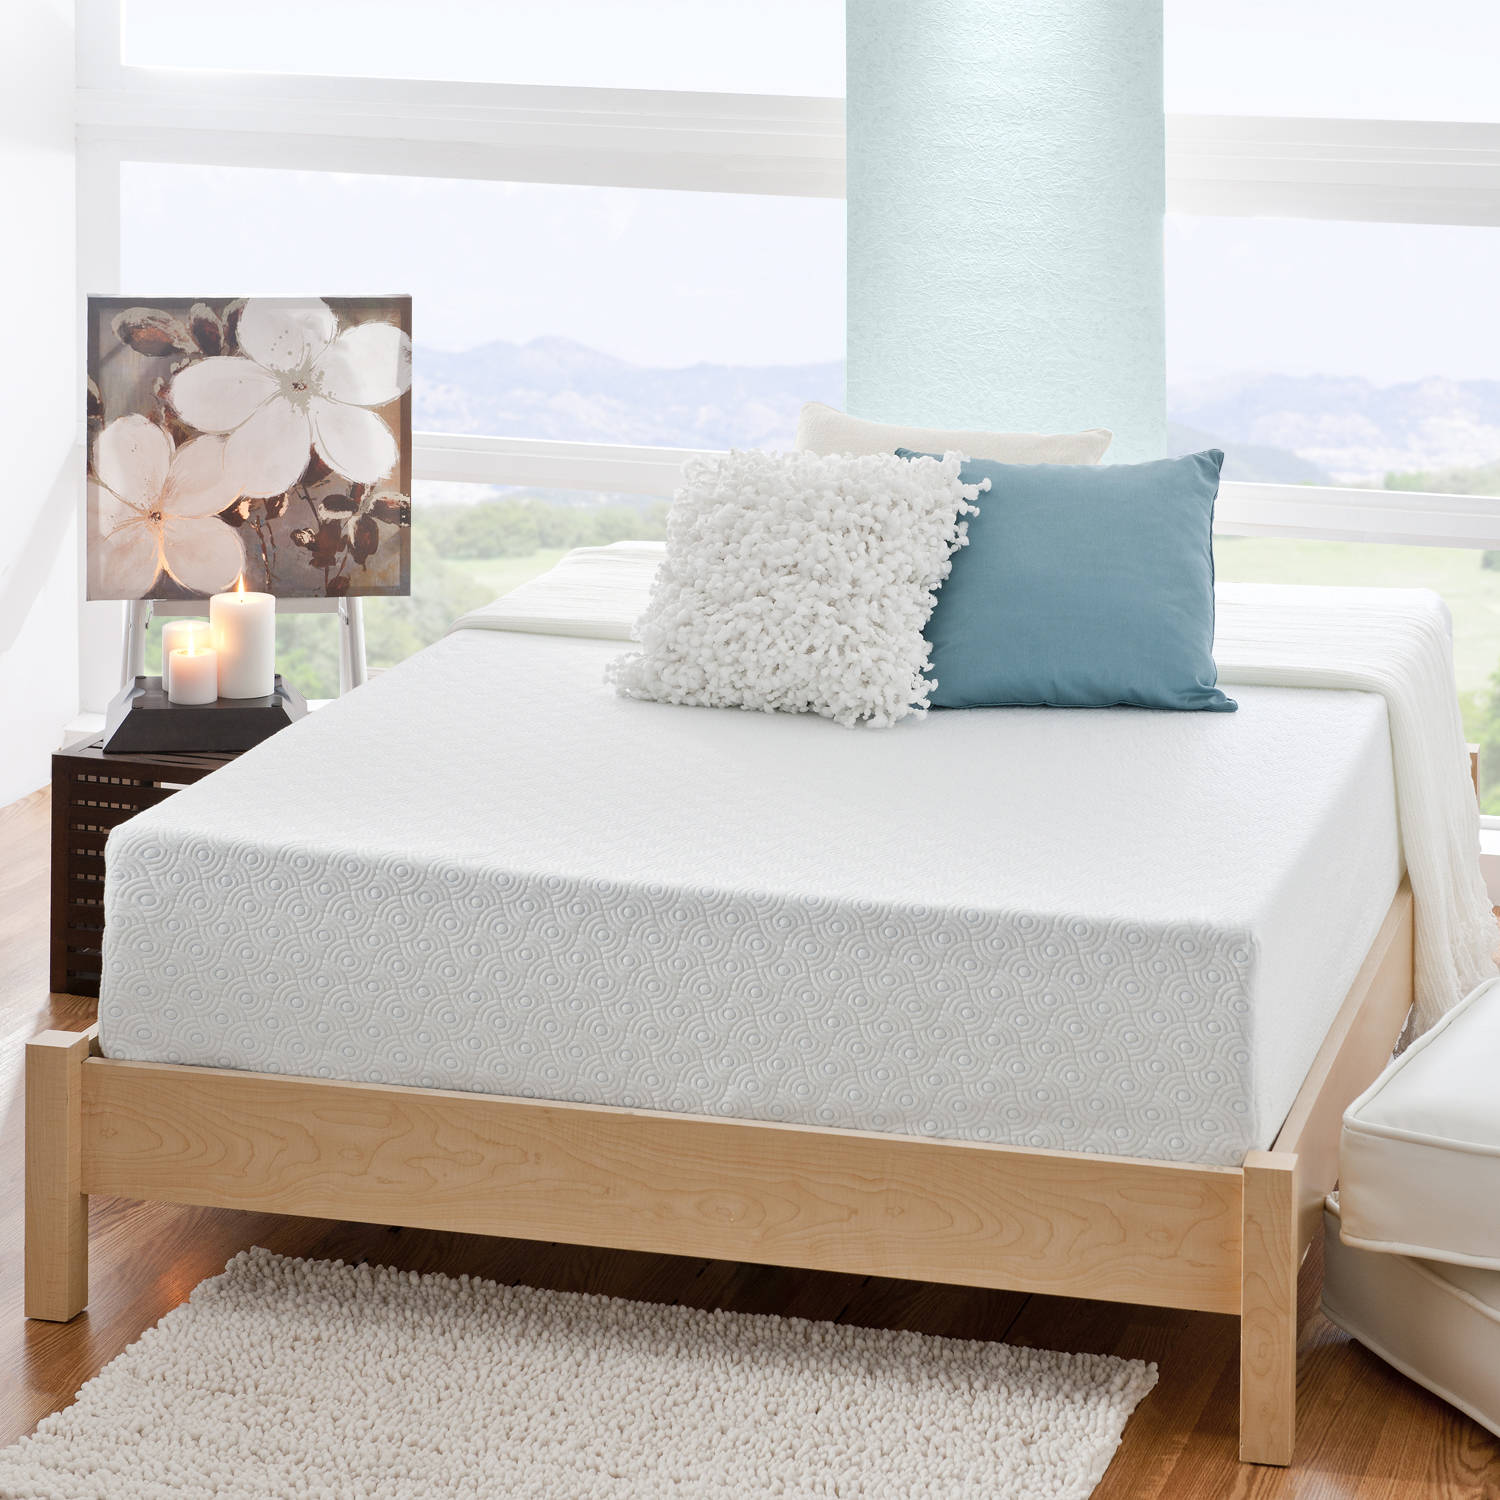 "Spa Sensations Mygel 12"" Mattress"